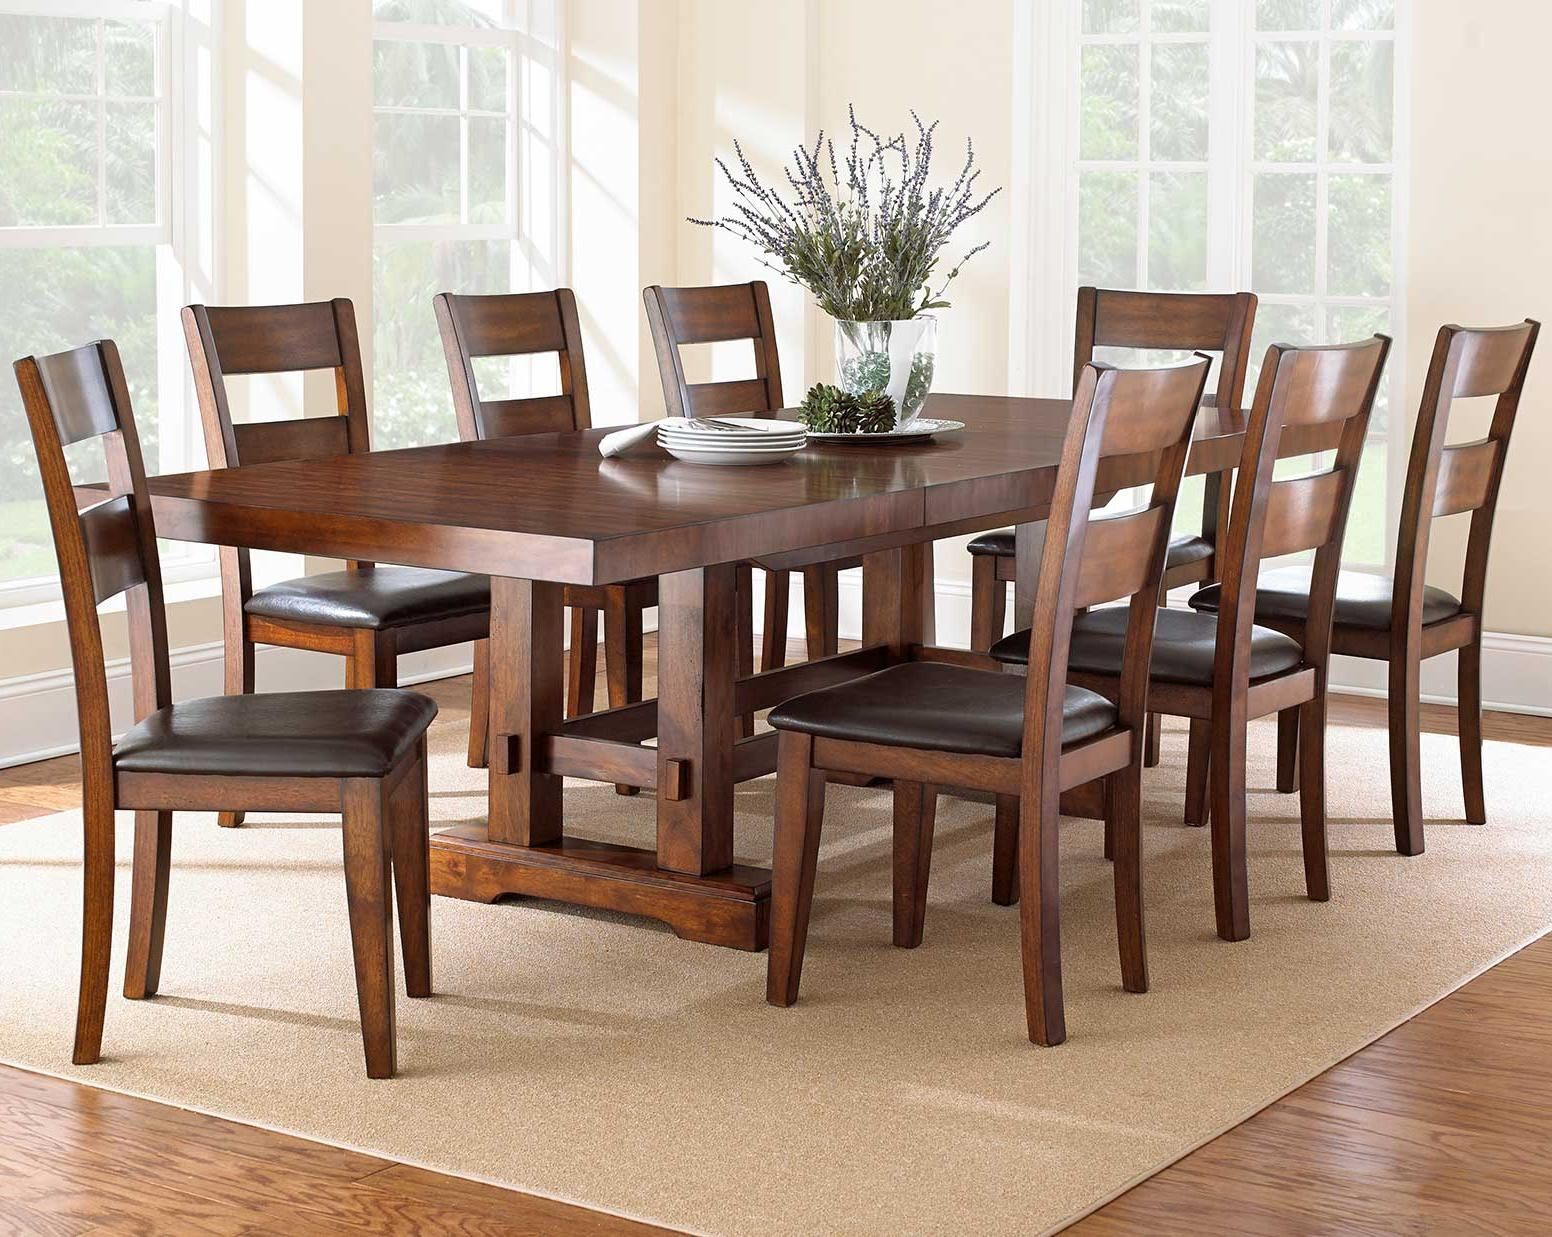 Black Dining Room Table And Chairs Zappa 9 Piece Dining Set With Ladderback Chairs By Vendor 3985 At Becker Furniture World